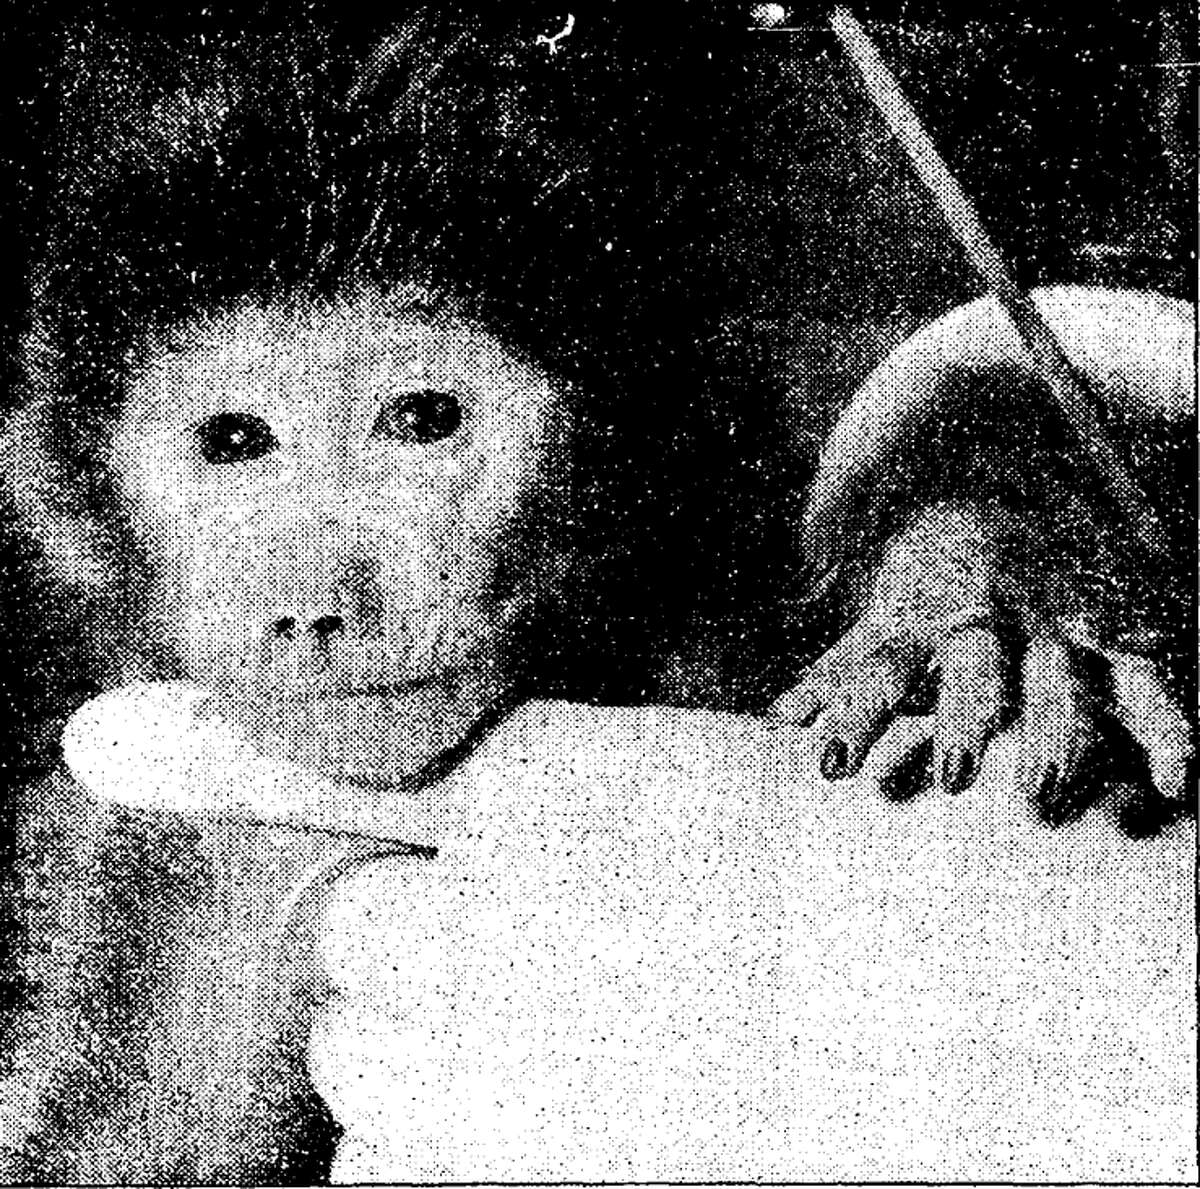 E.T., the world's first test tube primate, was born 38 years ago this week in San Antonio. E.T. was 18 hours old in this photo and was born at the Southwest Foundation for Research and Education.